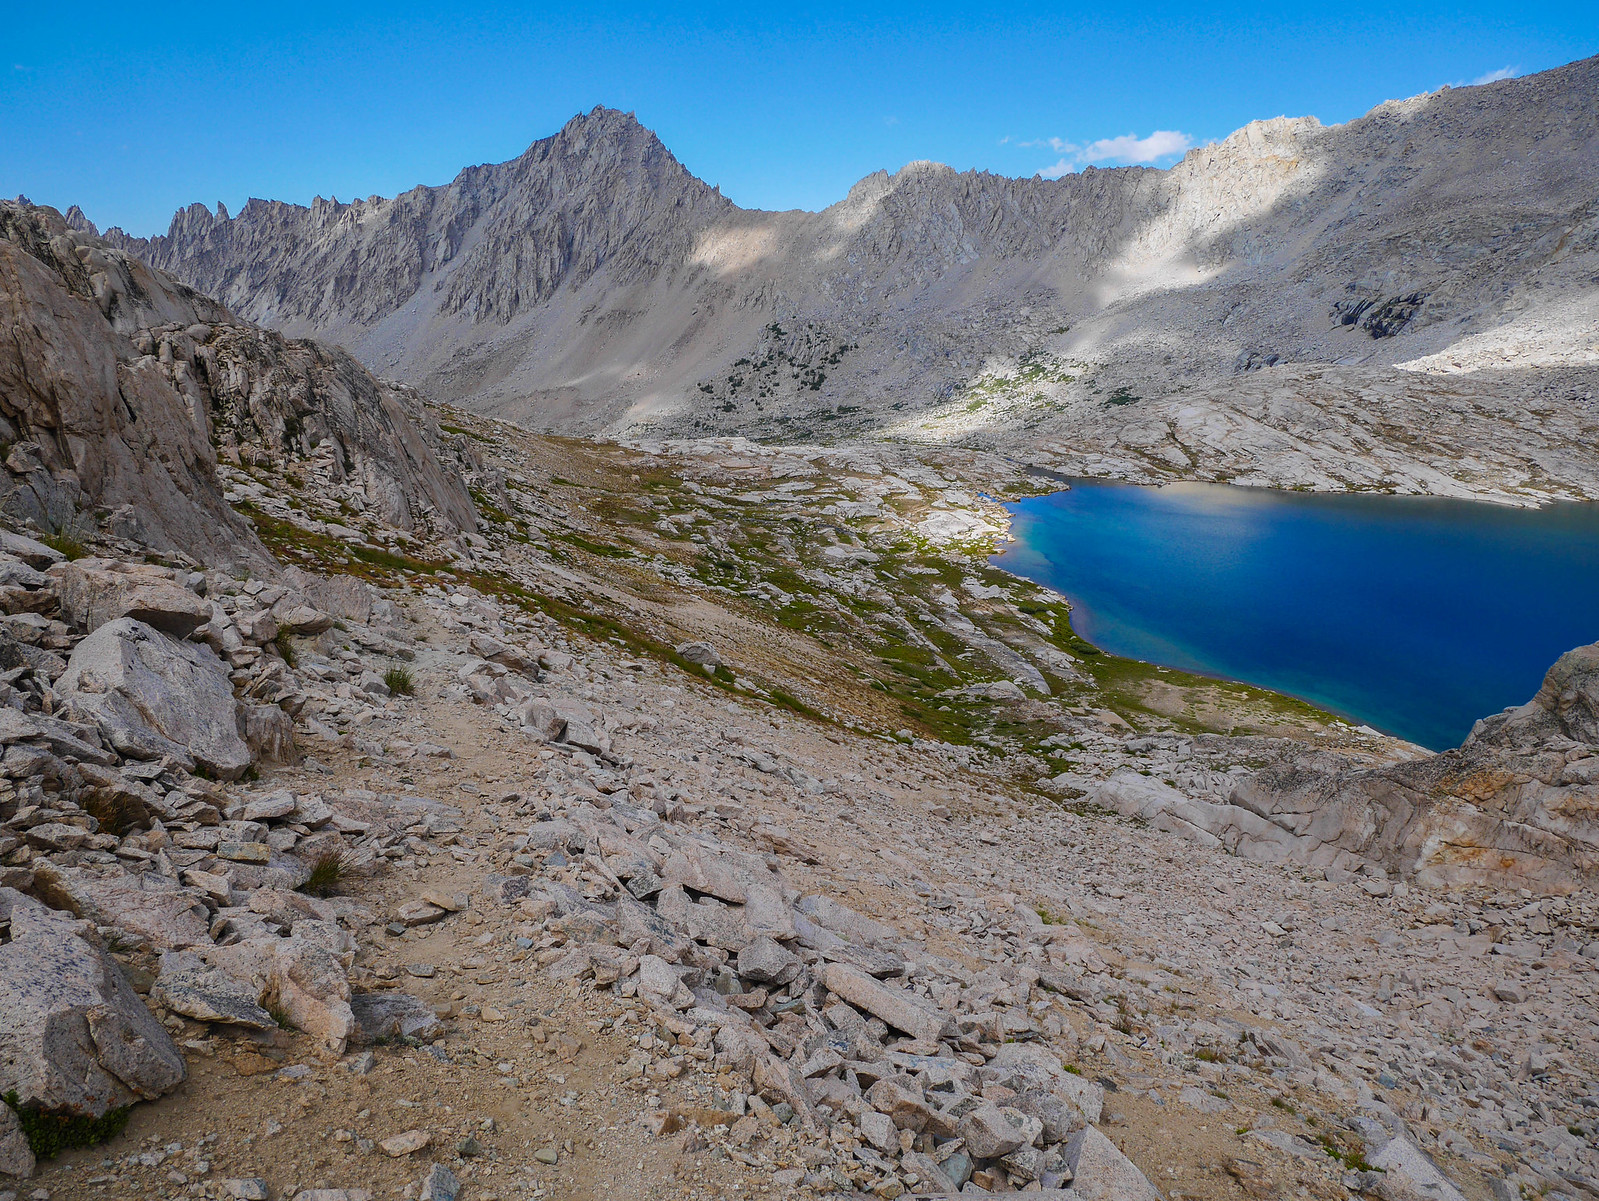 Looking back on Lake 11,773 from the use trail up to Junction Pass